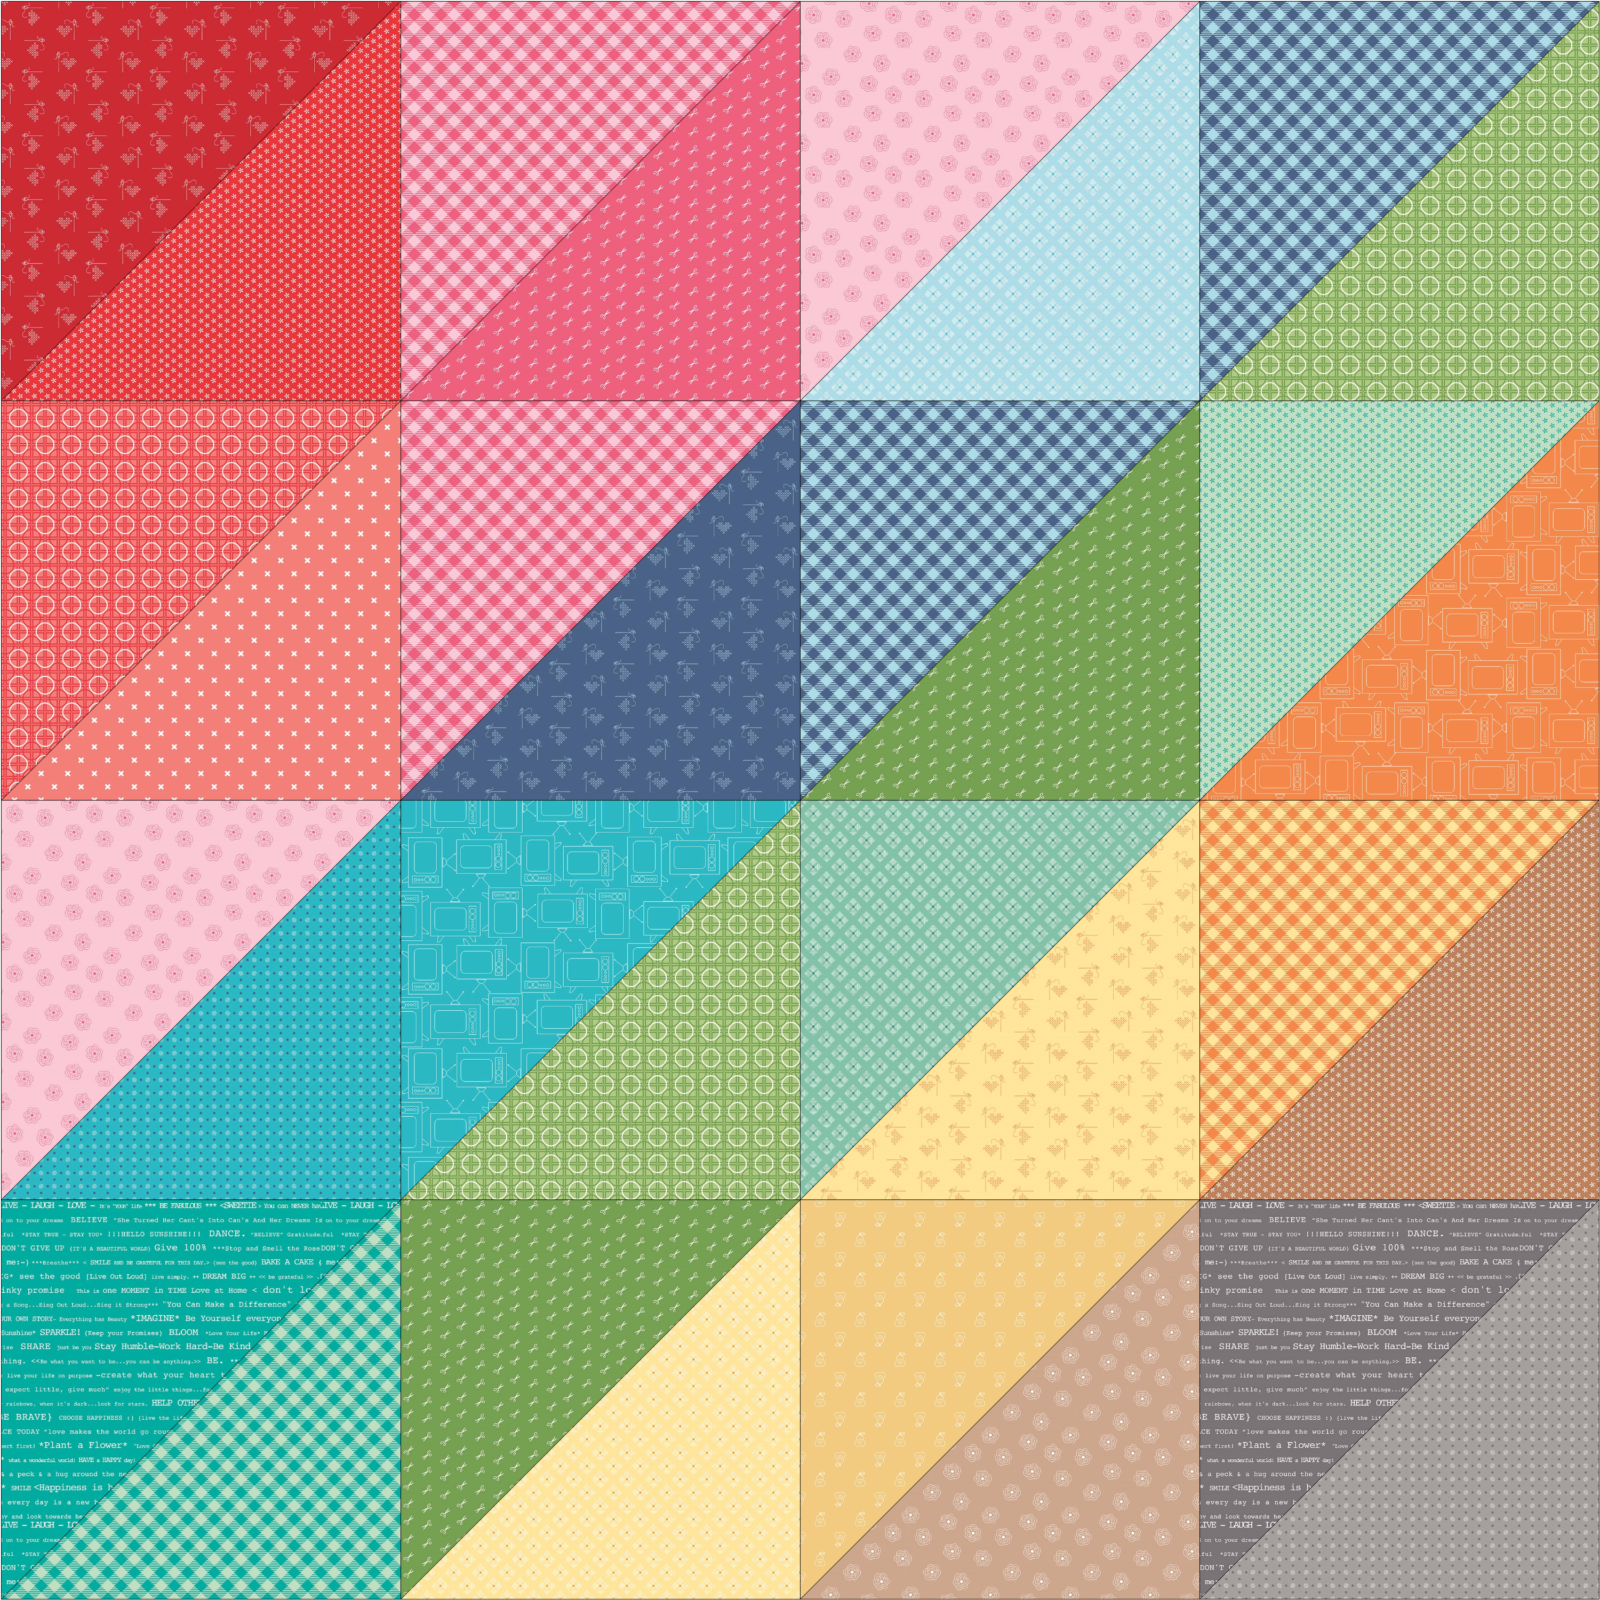 Easy Giant Half Square Triangle Quilt with Color Gradient